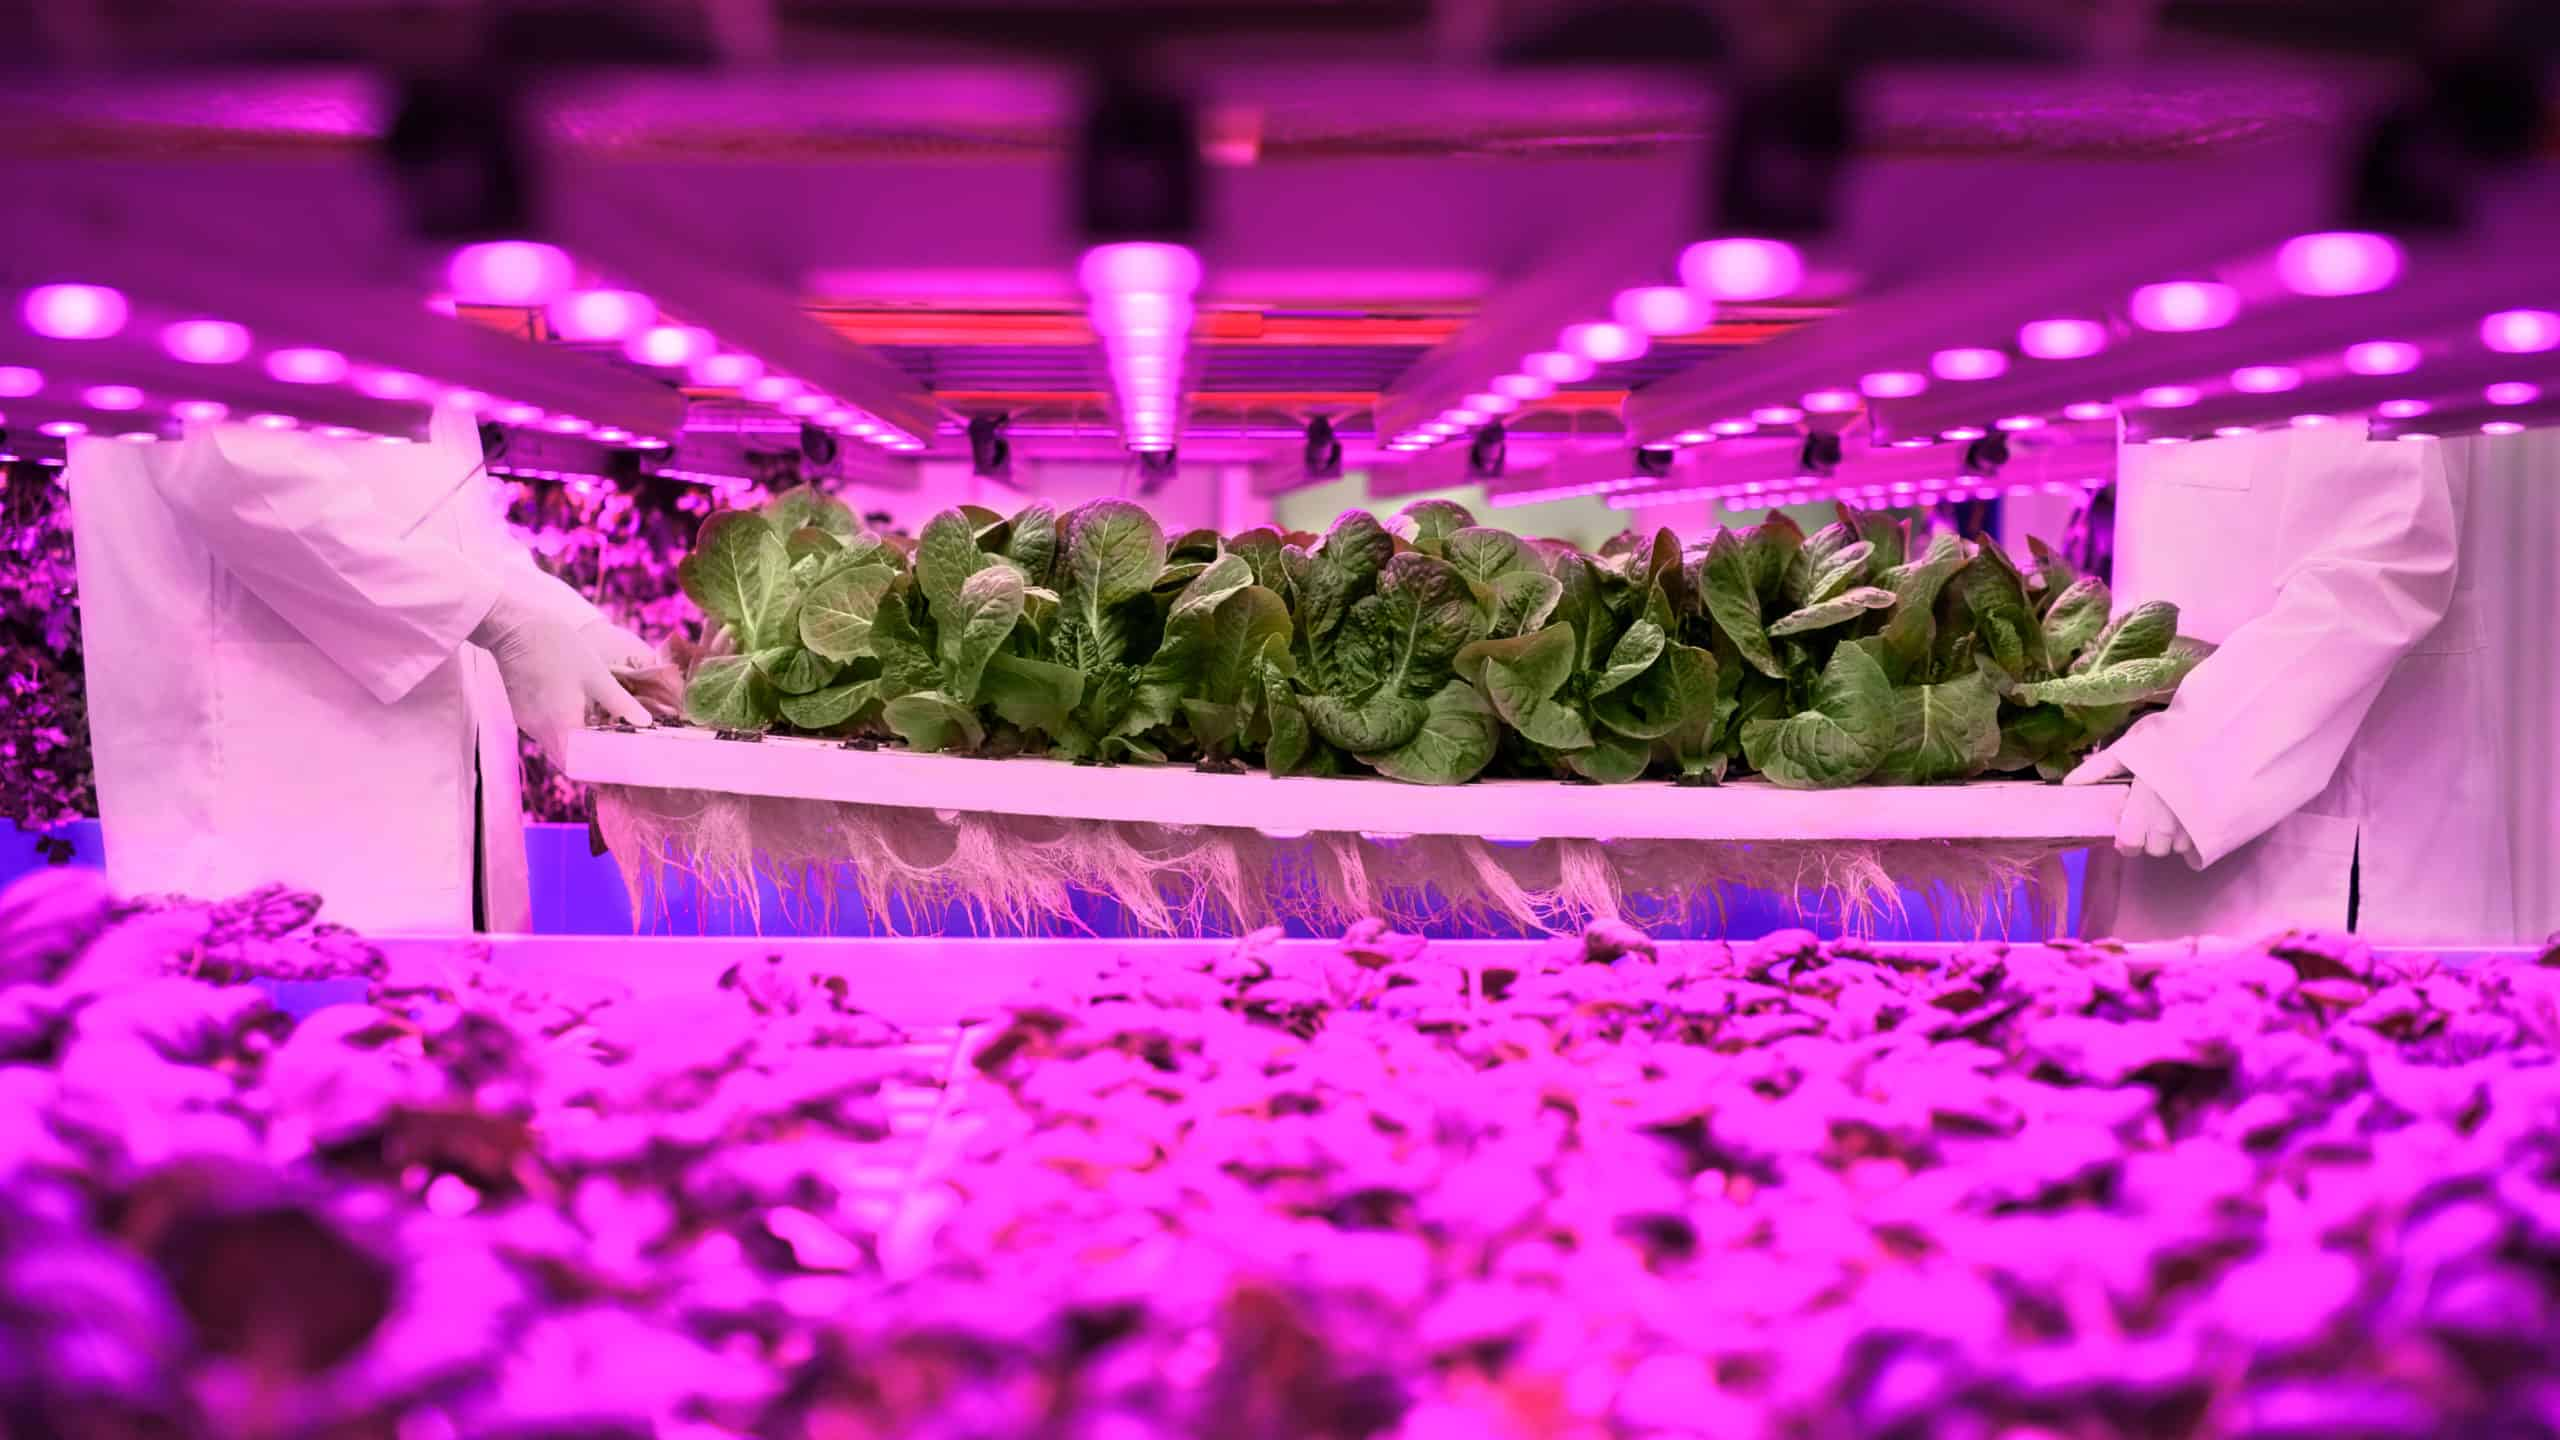 Is controlled environment agriculture ready to seize the future?